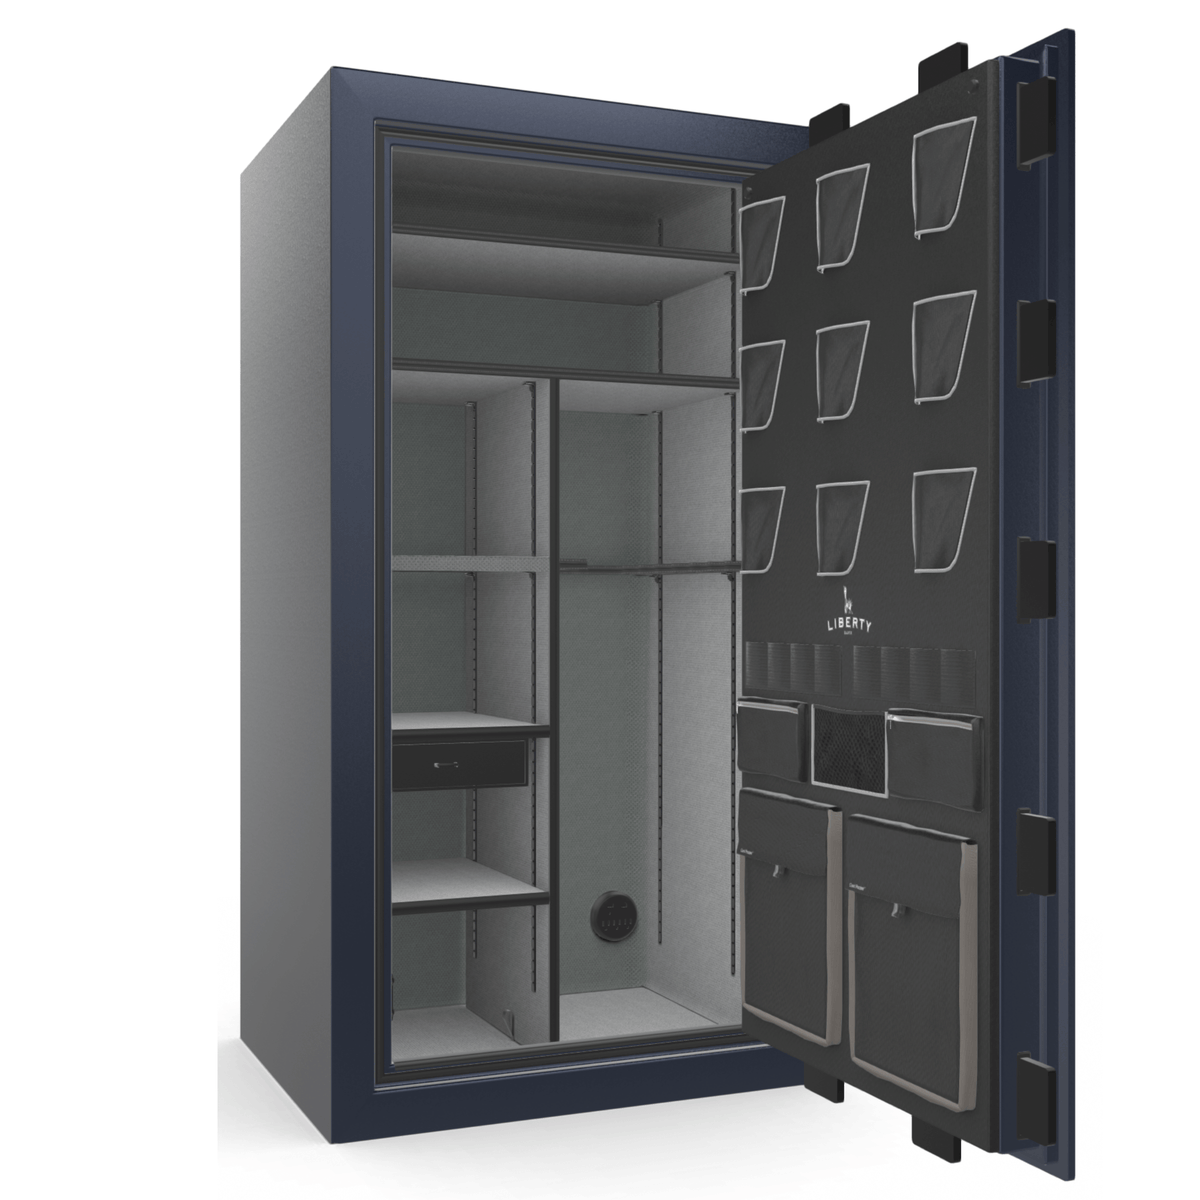 "Classic Plus | 40 | Level 7 Security | 110 Minute Fire Protection | Blue Gloss | Chrome Mechanical Lock | 65.5""(H) x 36""(W) x 32""(D)"